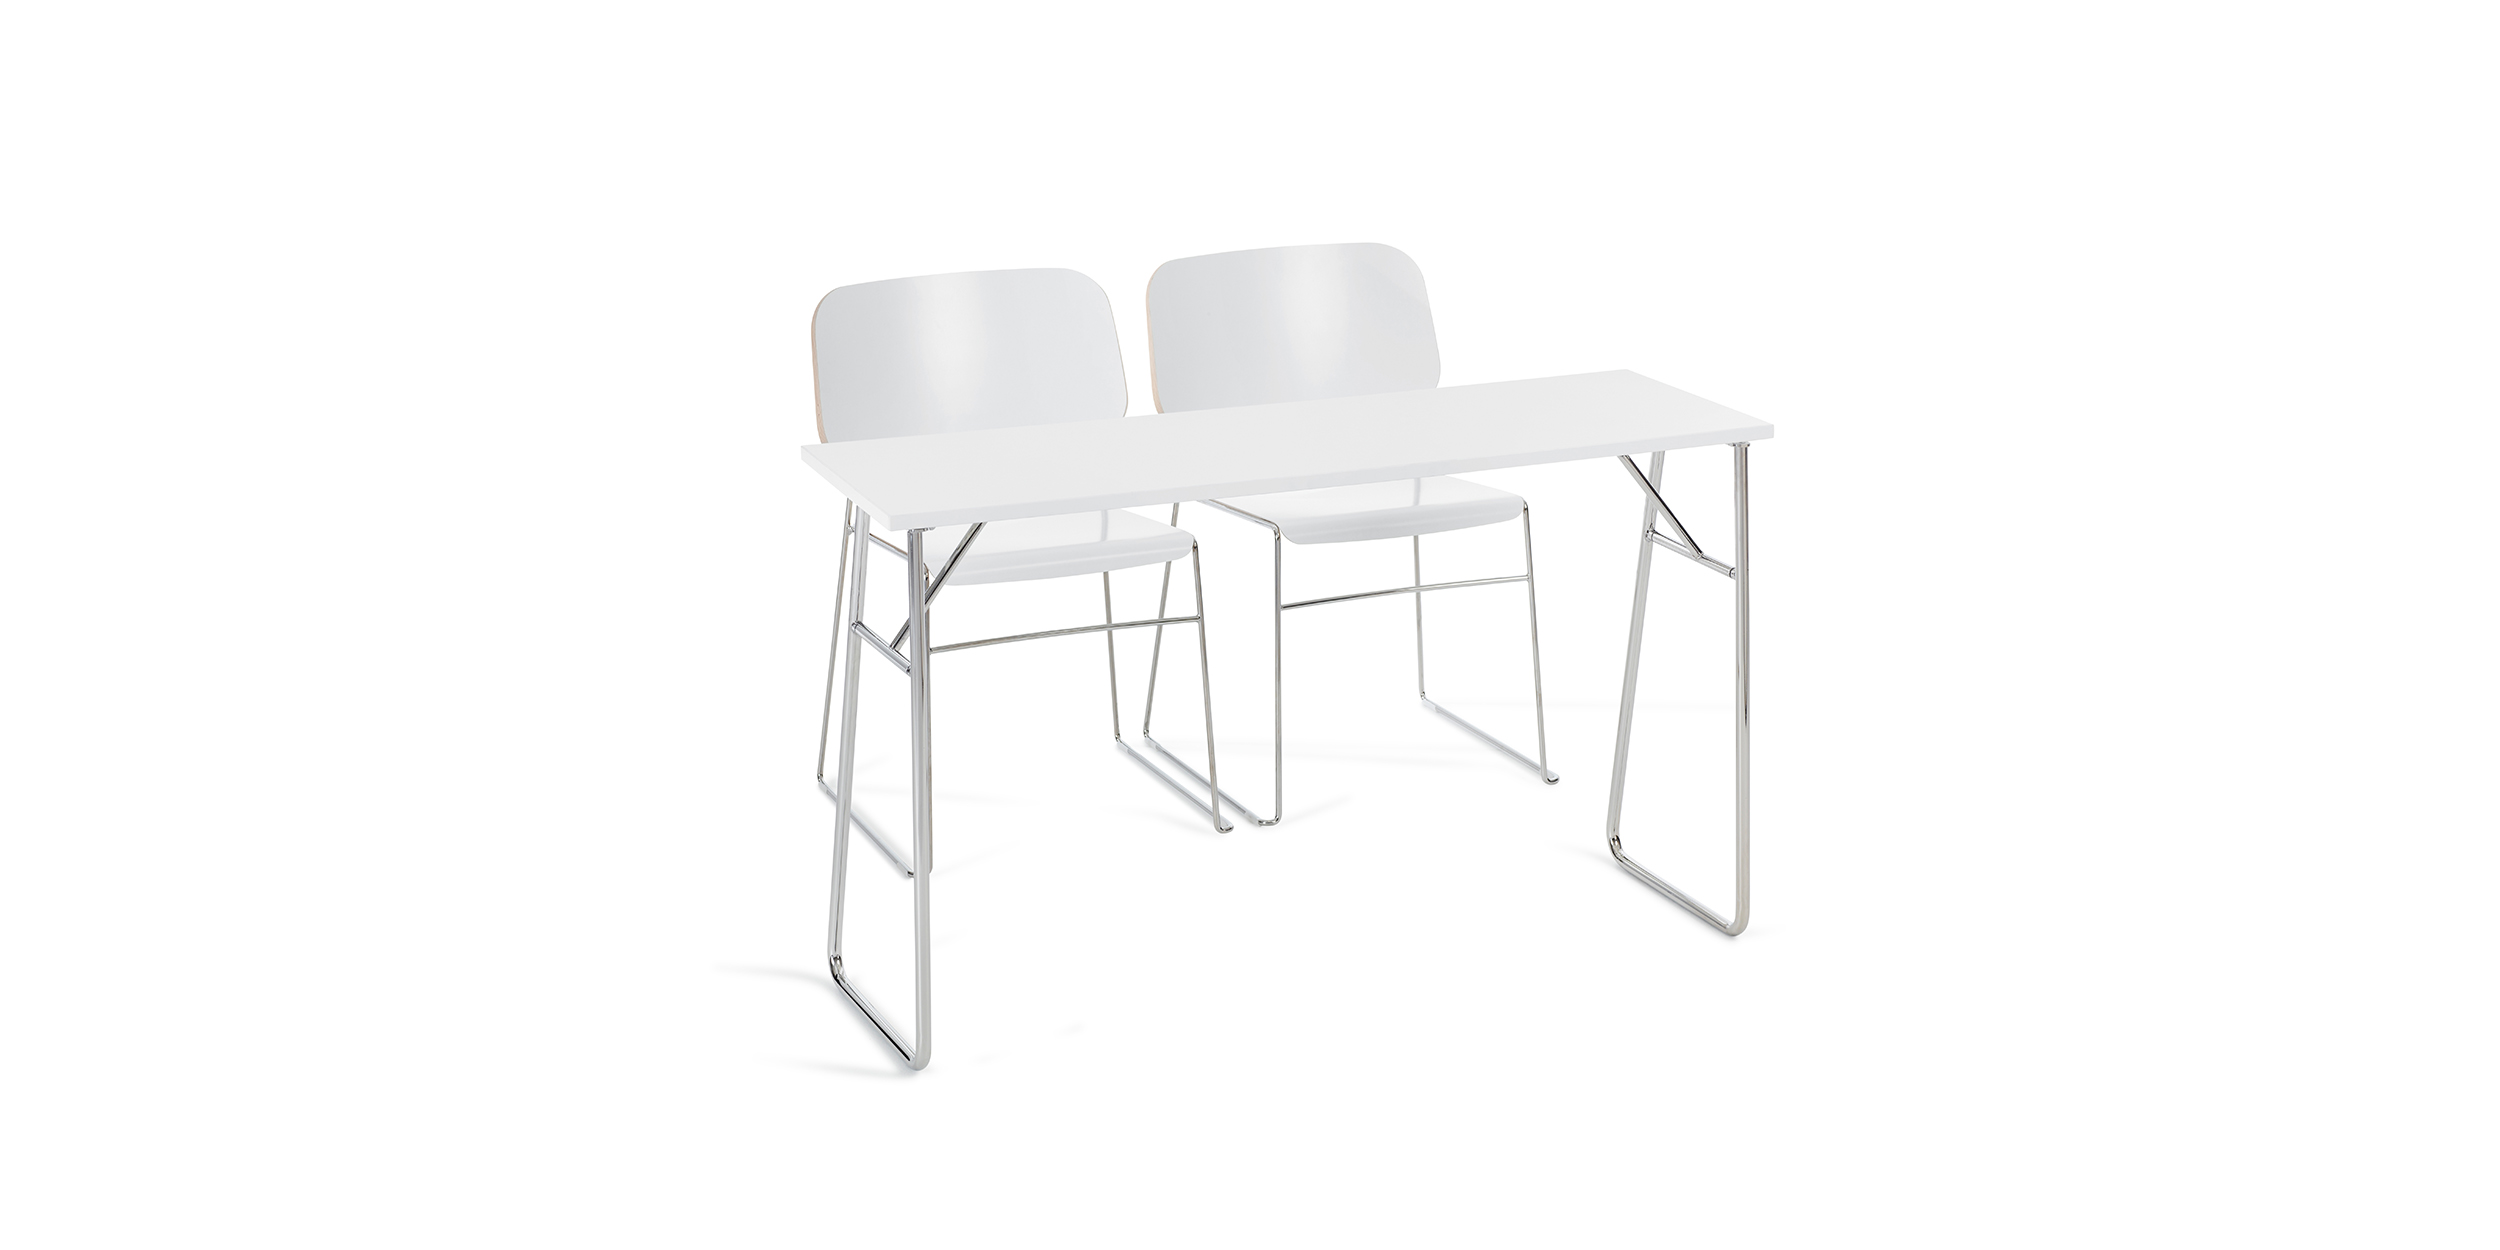 Lite, Folding table by Broberg & Ridderstråle